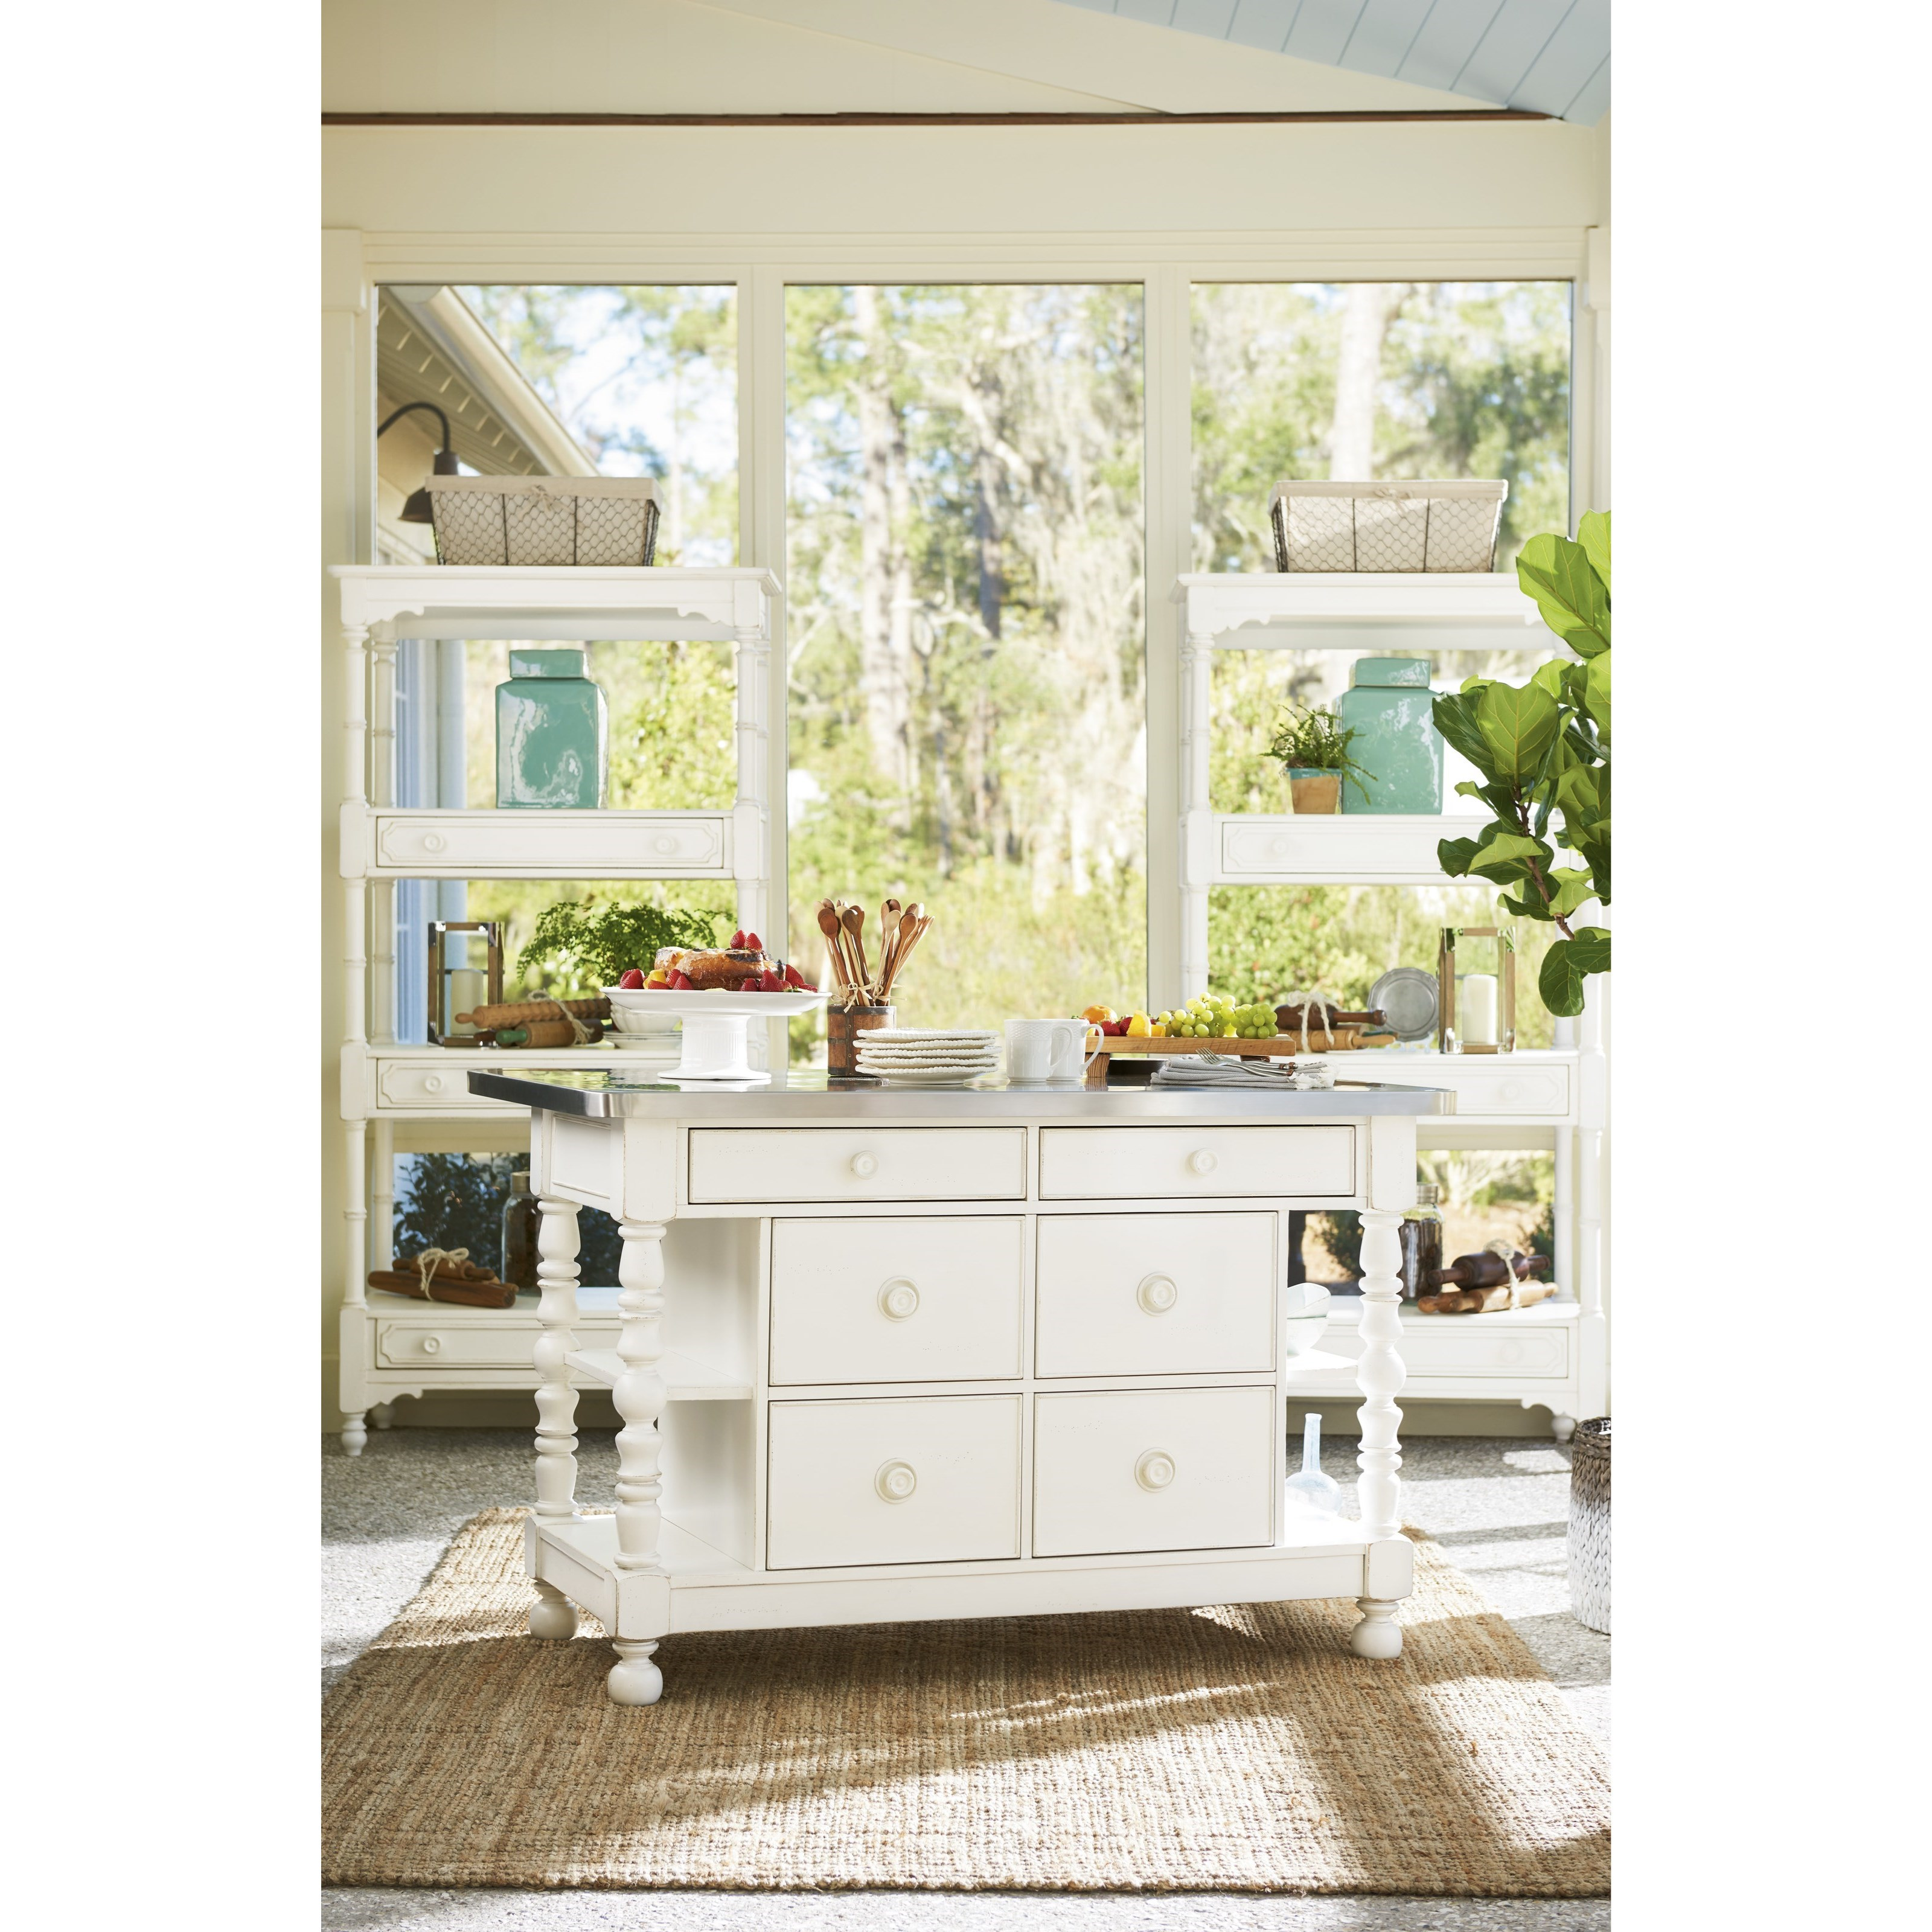 Paula Deen By Universal Bungalow Cottage Kitchen Island